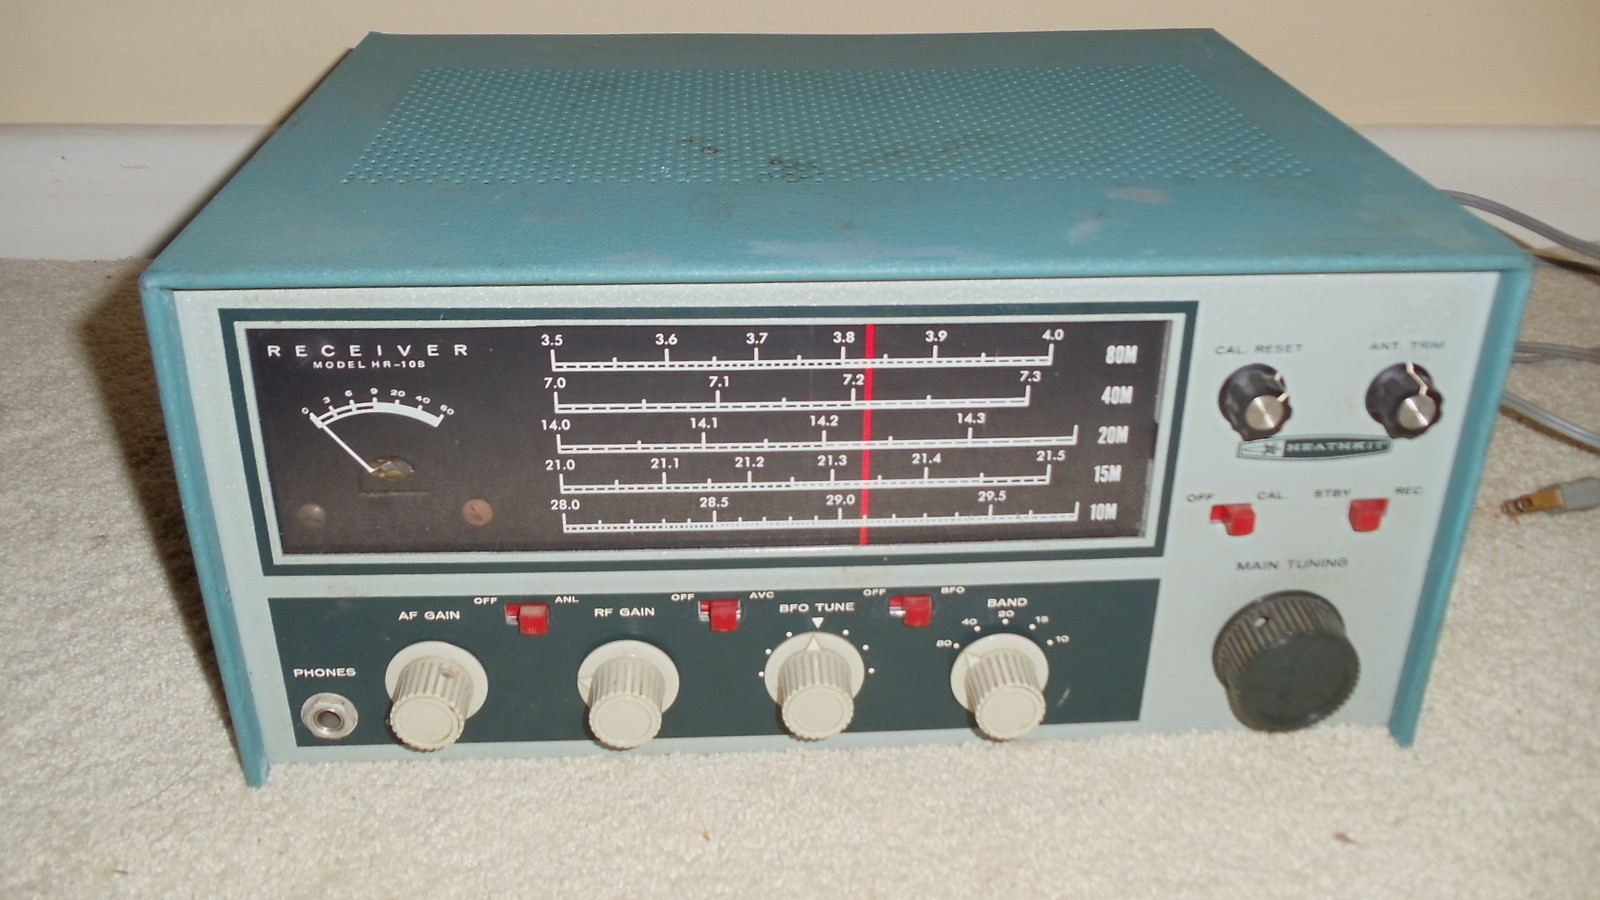 Sprague | The Old Tube Radio Archives